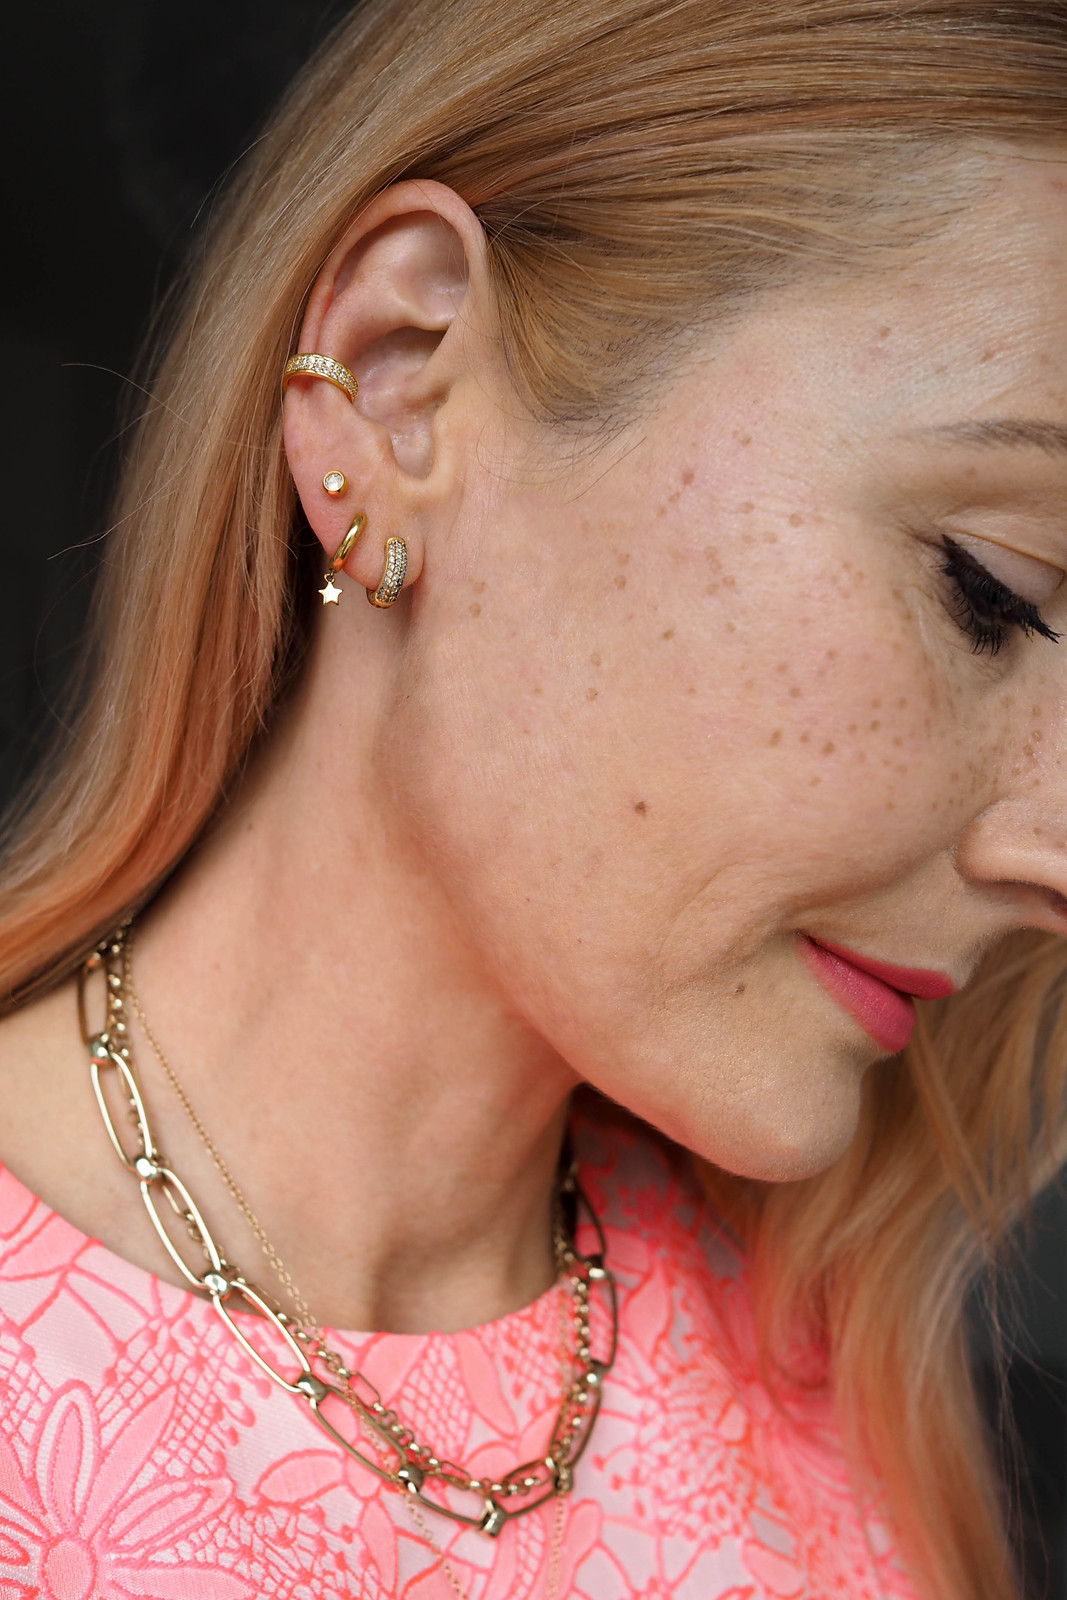 My Current Jewellery Obsession... Earrings and Ear Cuffs | Not Dressed As Lamb: Getting my ears pierced in my 40s